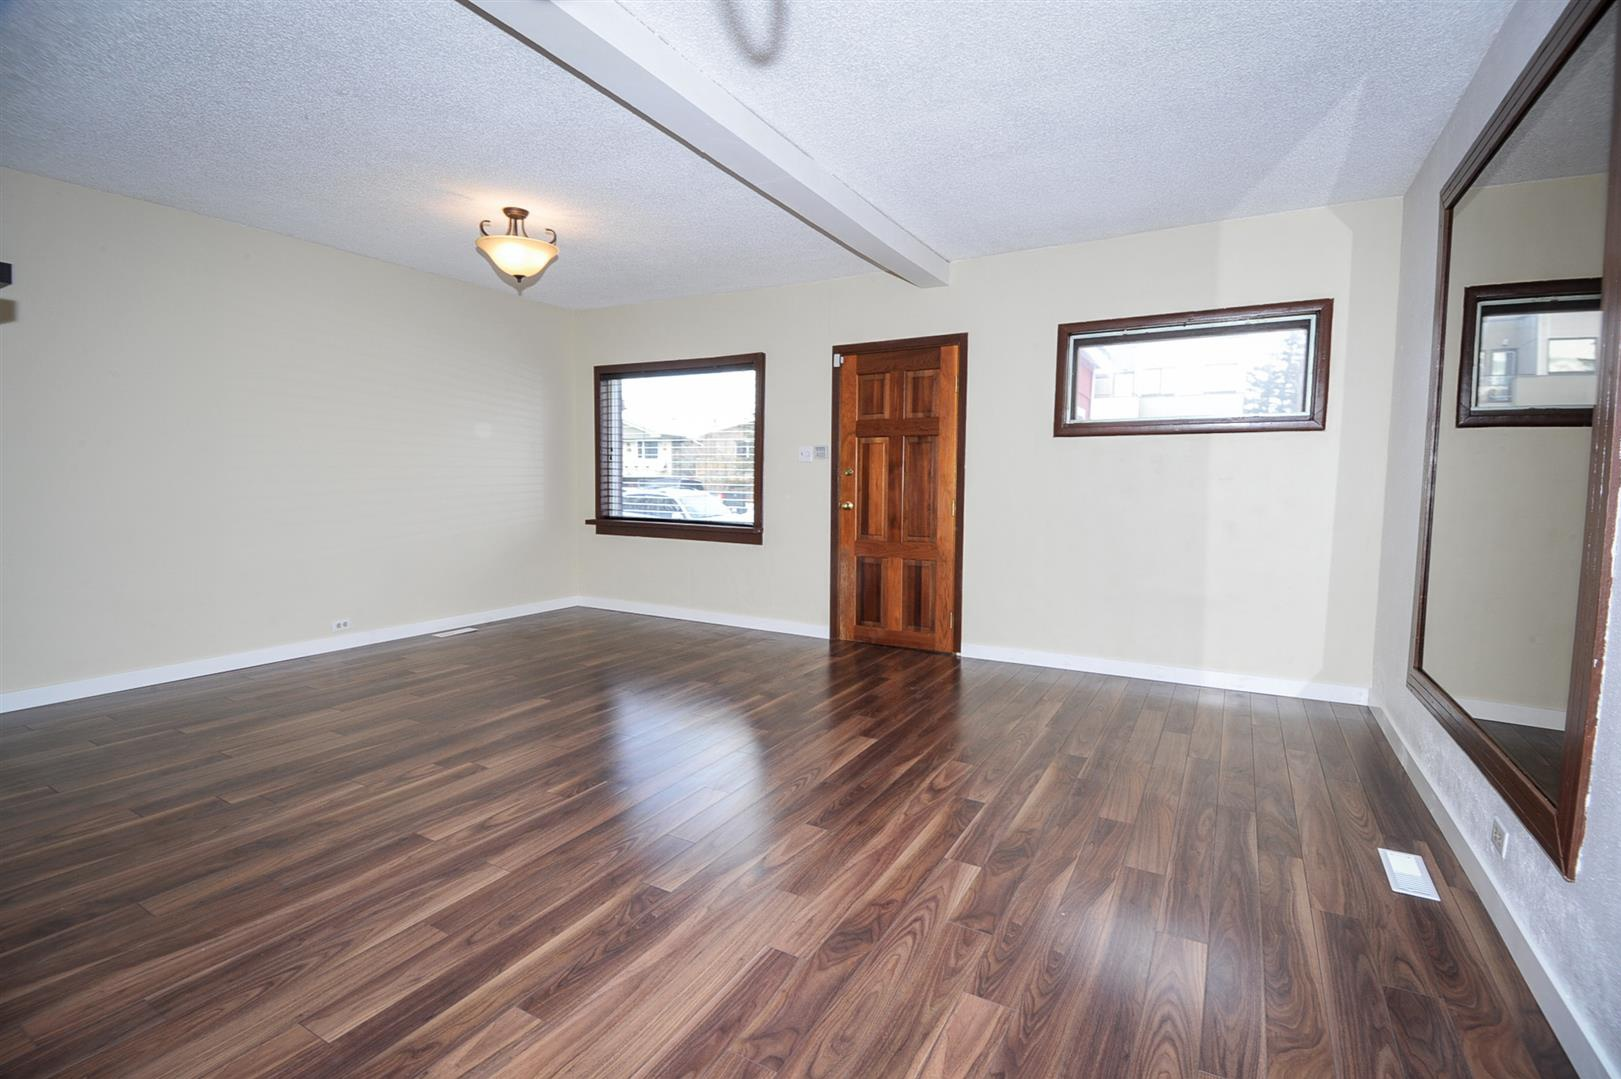 2007 5 Avenue NW in Calgary, AB